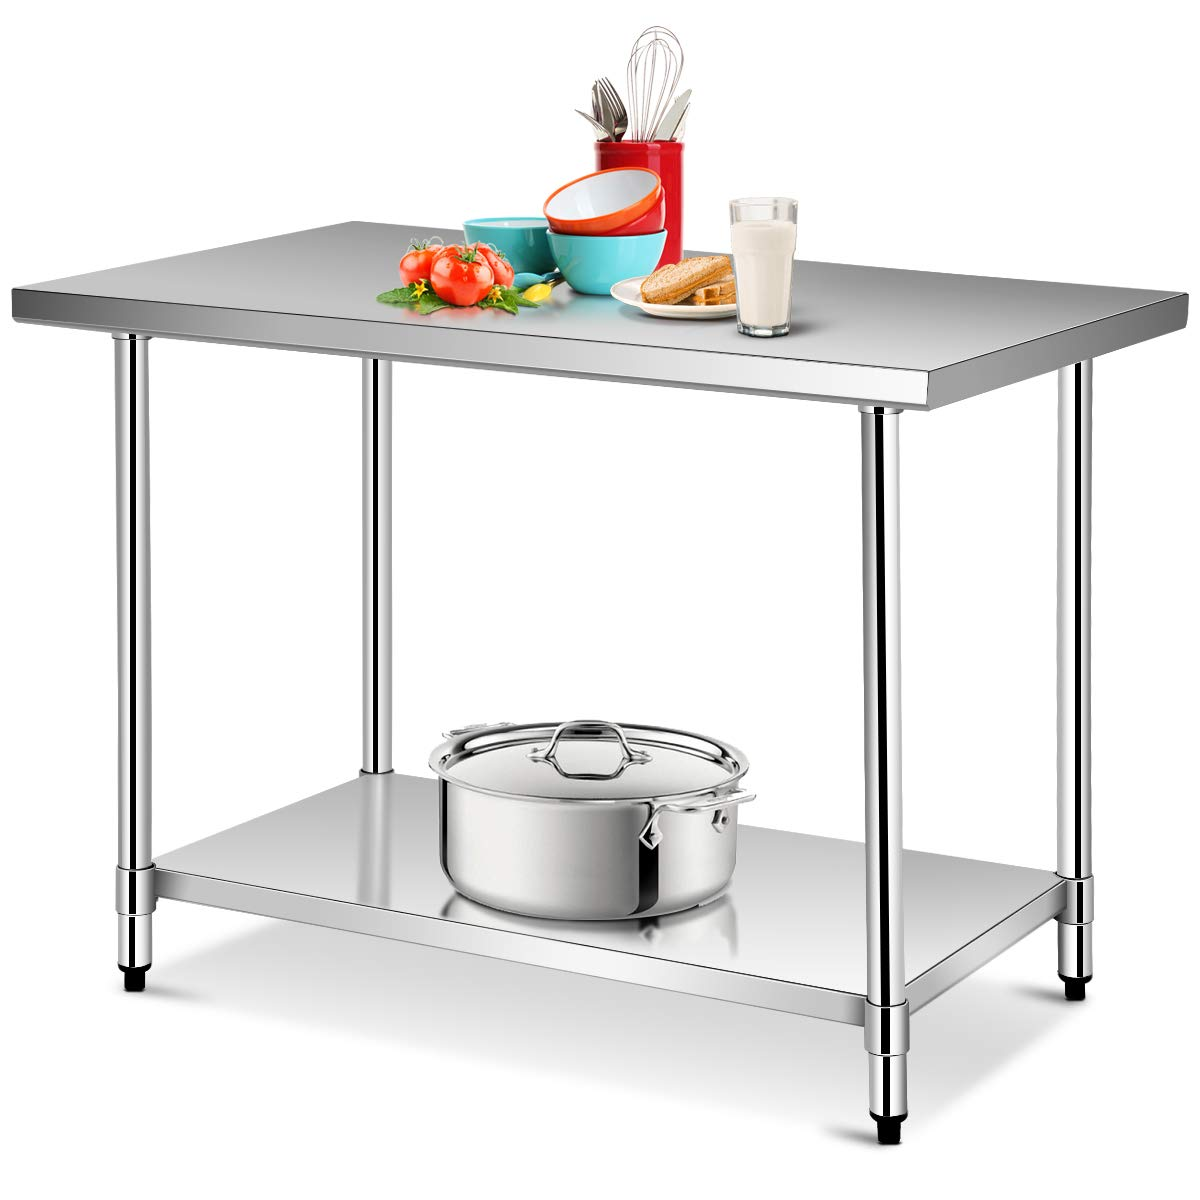 Giantex 48''x 30'' Food Prep Table Commercial Kitchen Work Table NSF Stainless Steel Work Table Kitchen Storage Table with Adjustable Shelf and Feet